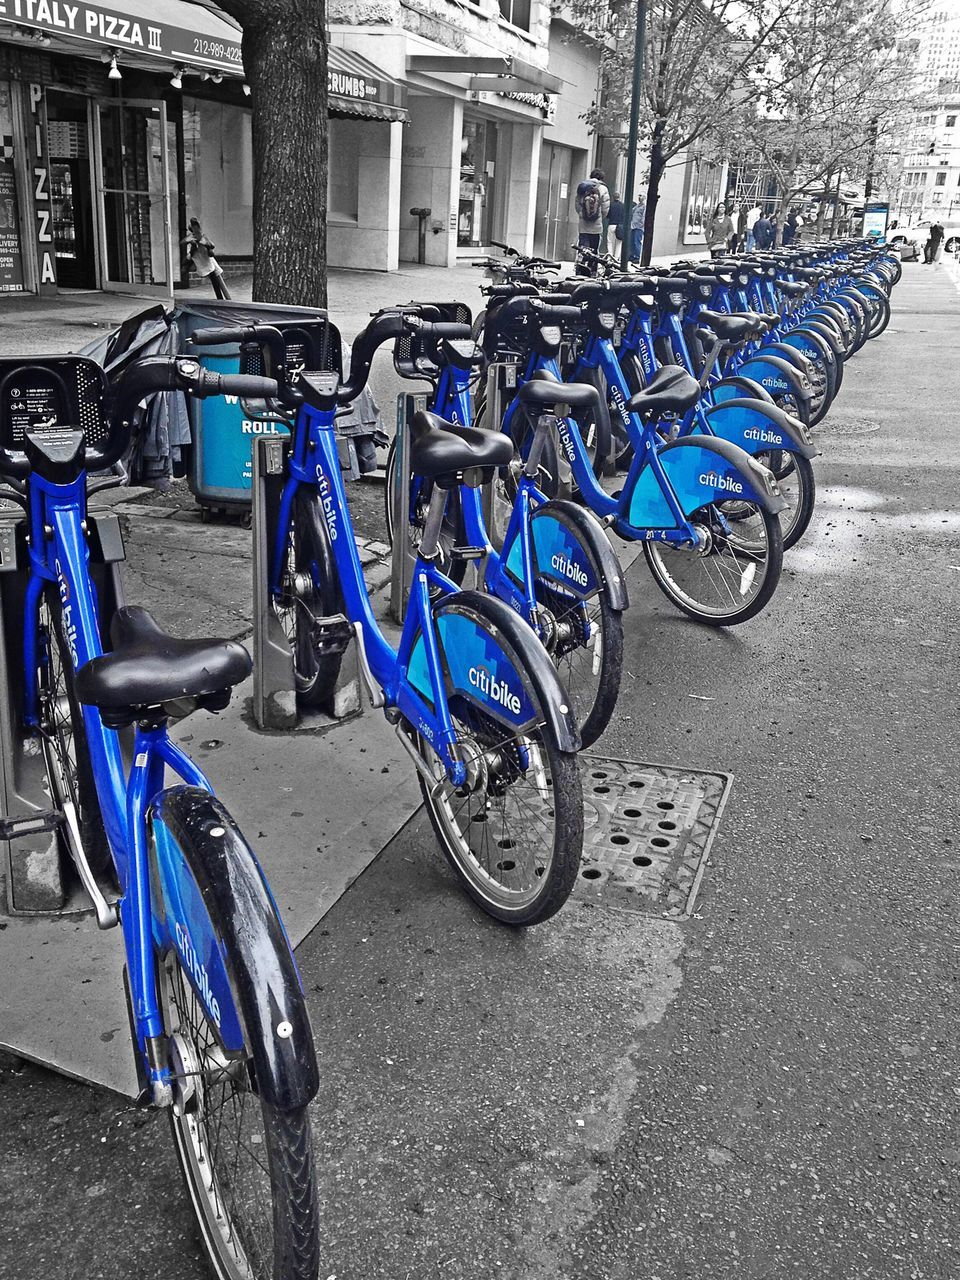 bicycle, transportation, mode of transport, stationary, parking, land vehicle, bicycle rack, in a row, architecture, street, built structure, no people, day, outdoors, building exterior, road, city, tire